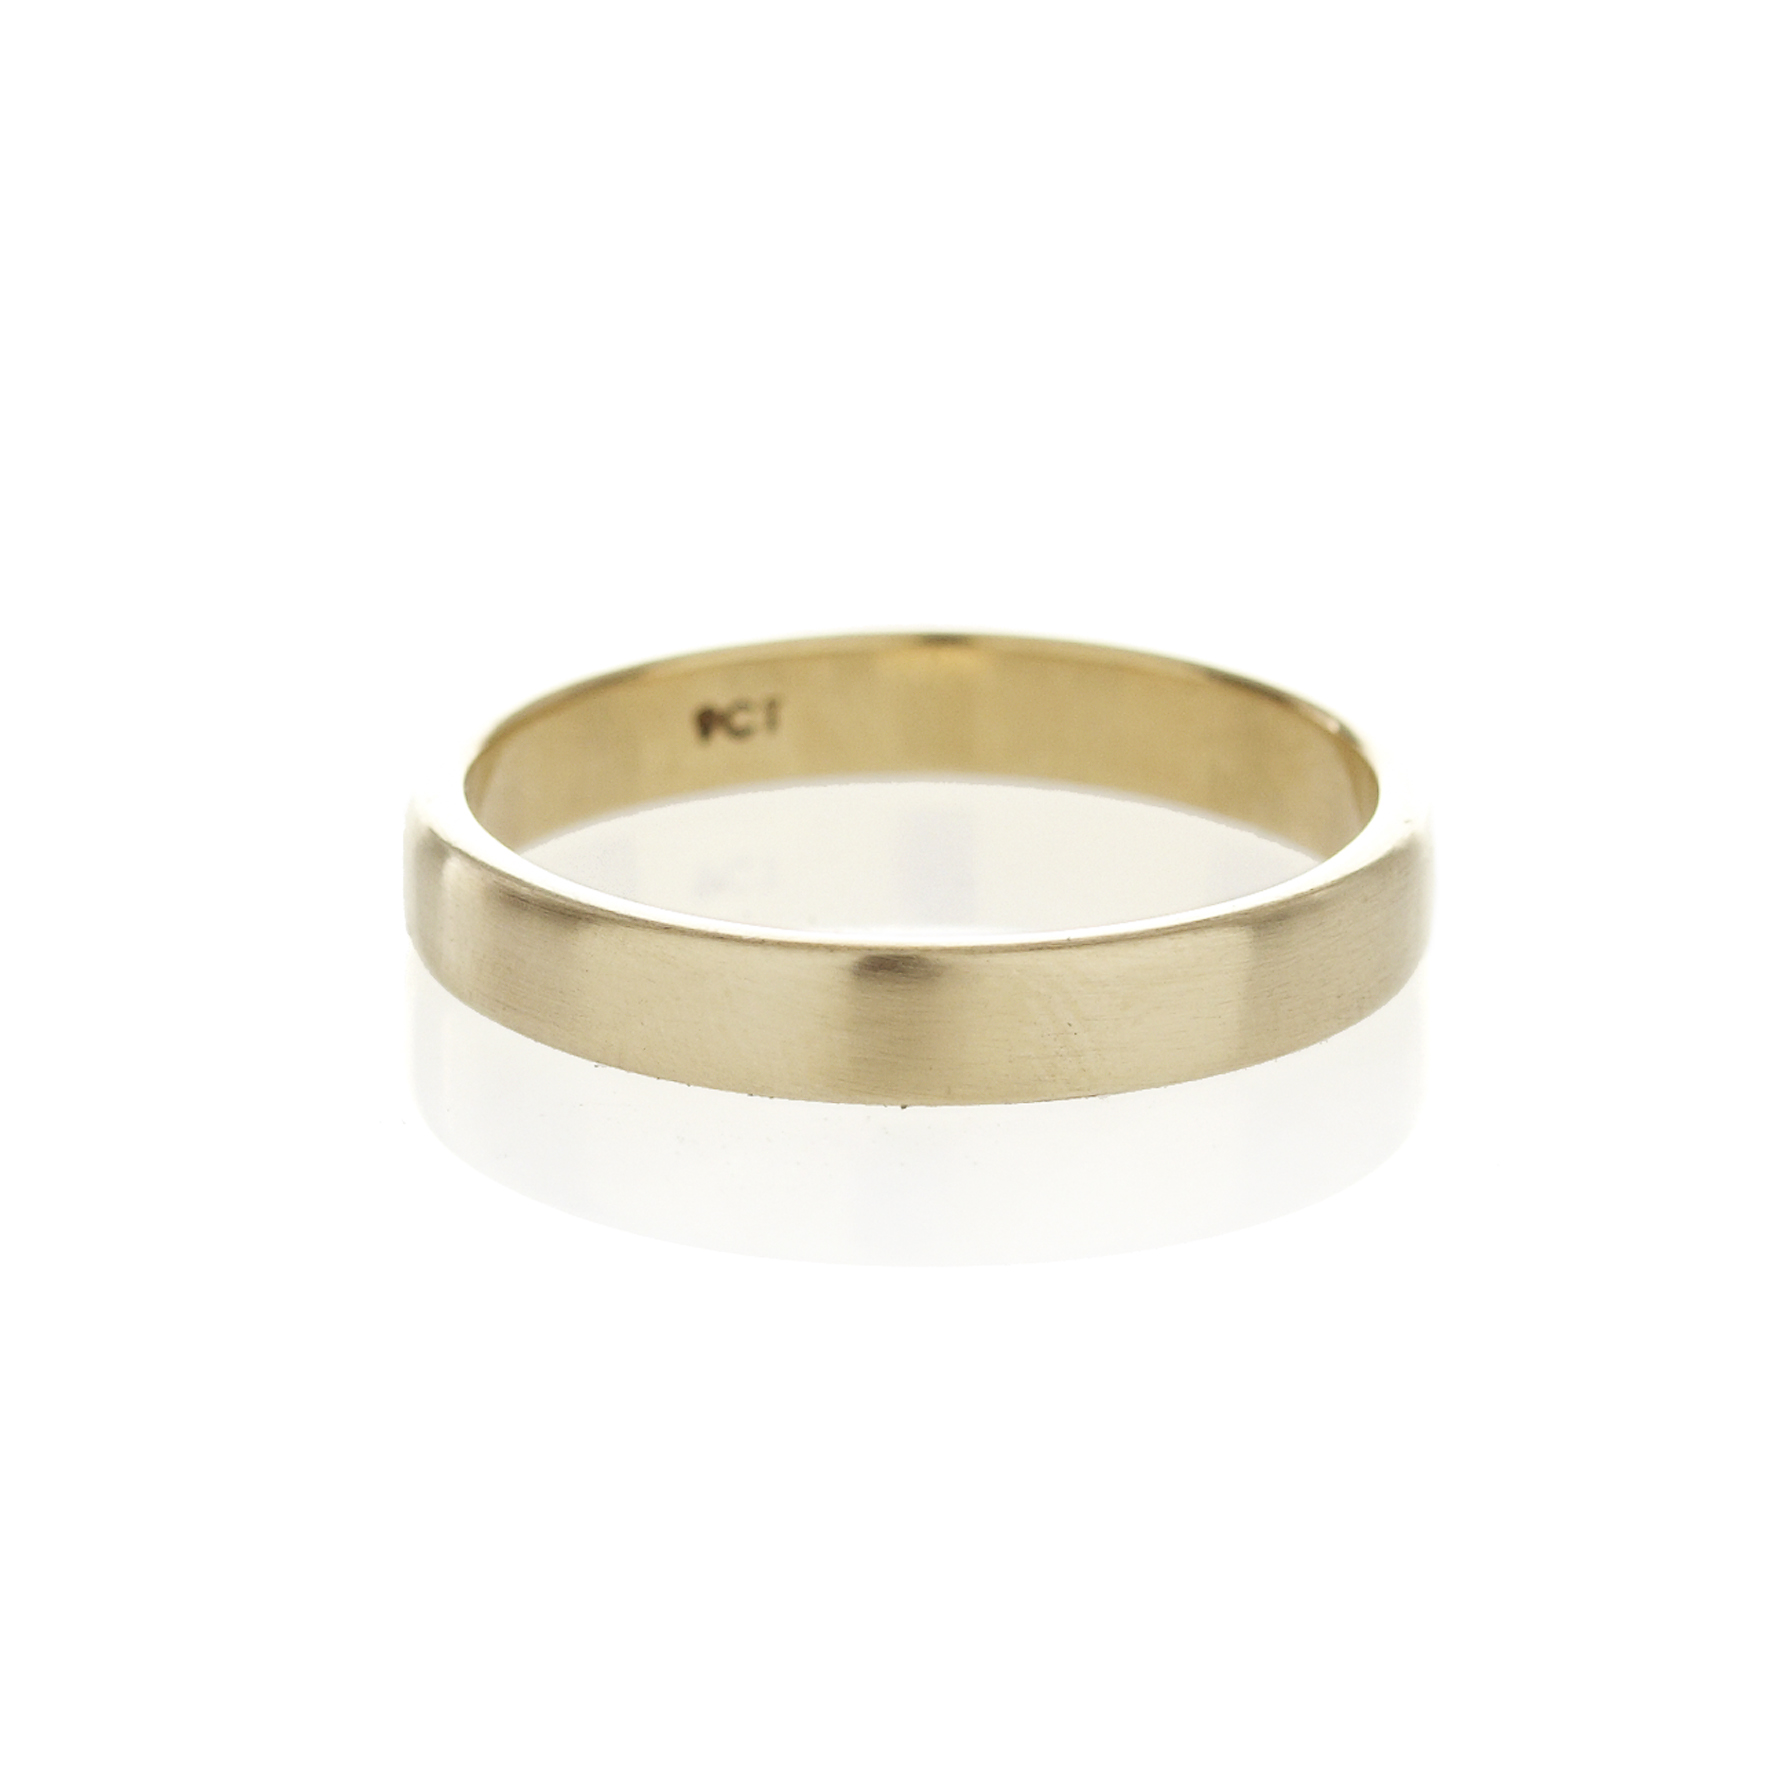 A square profile, 9ct yellow gold men's band, with a brushed or polished finish.